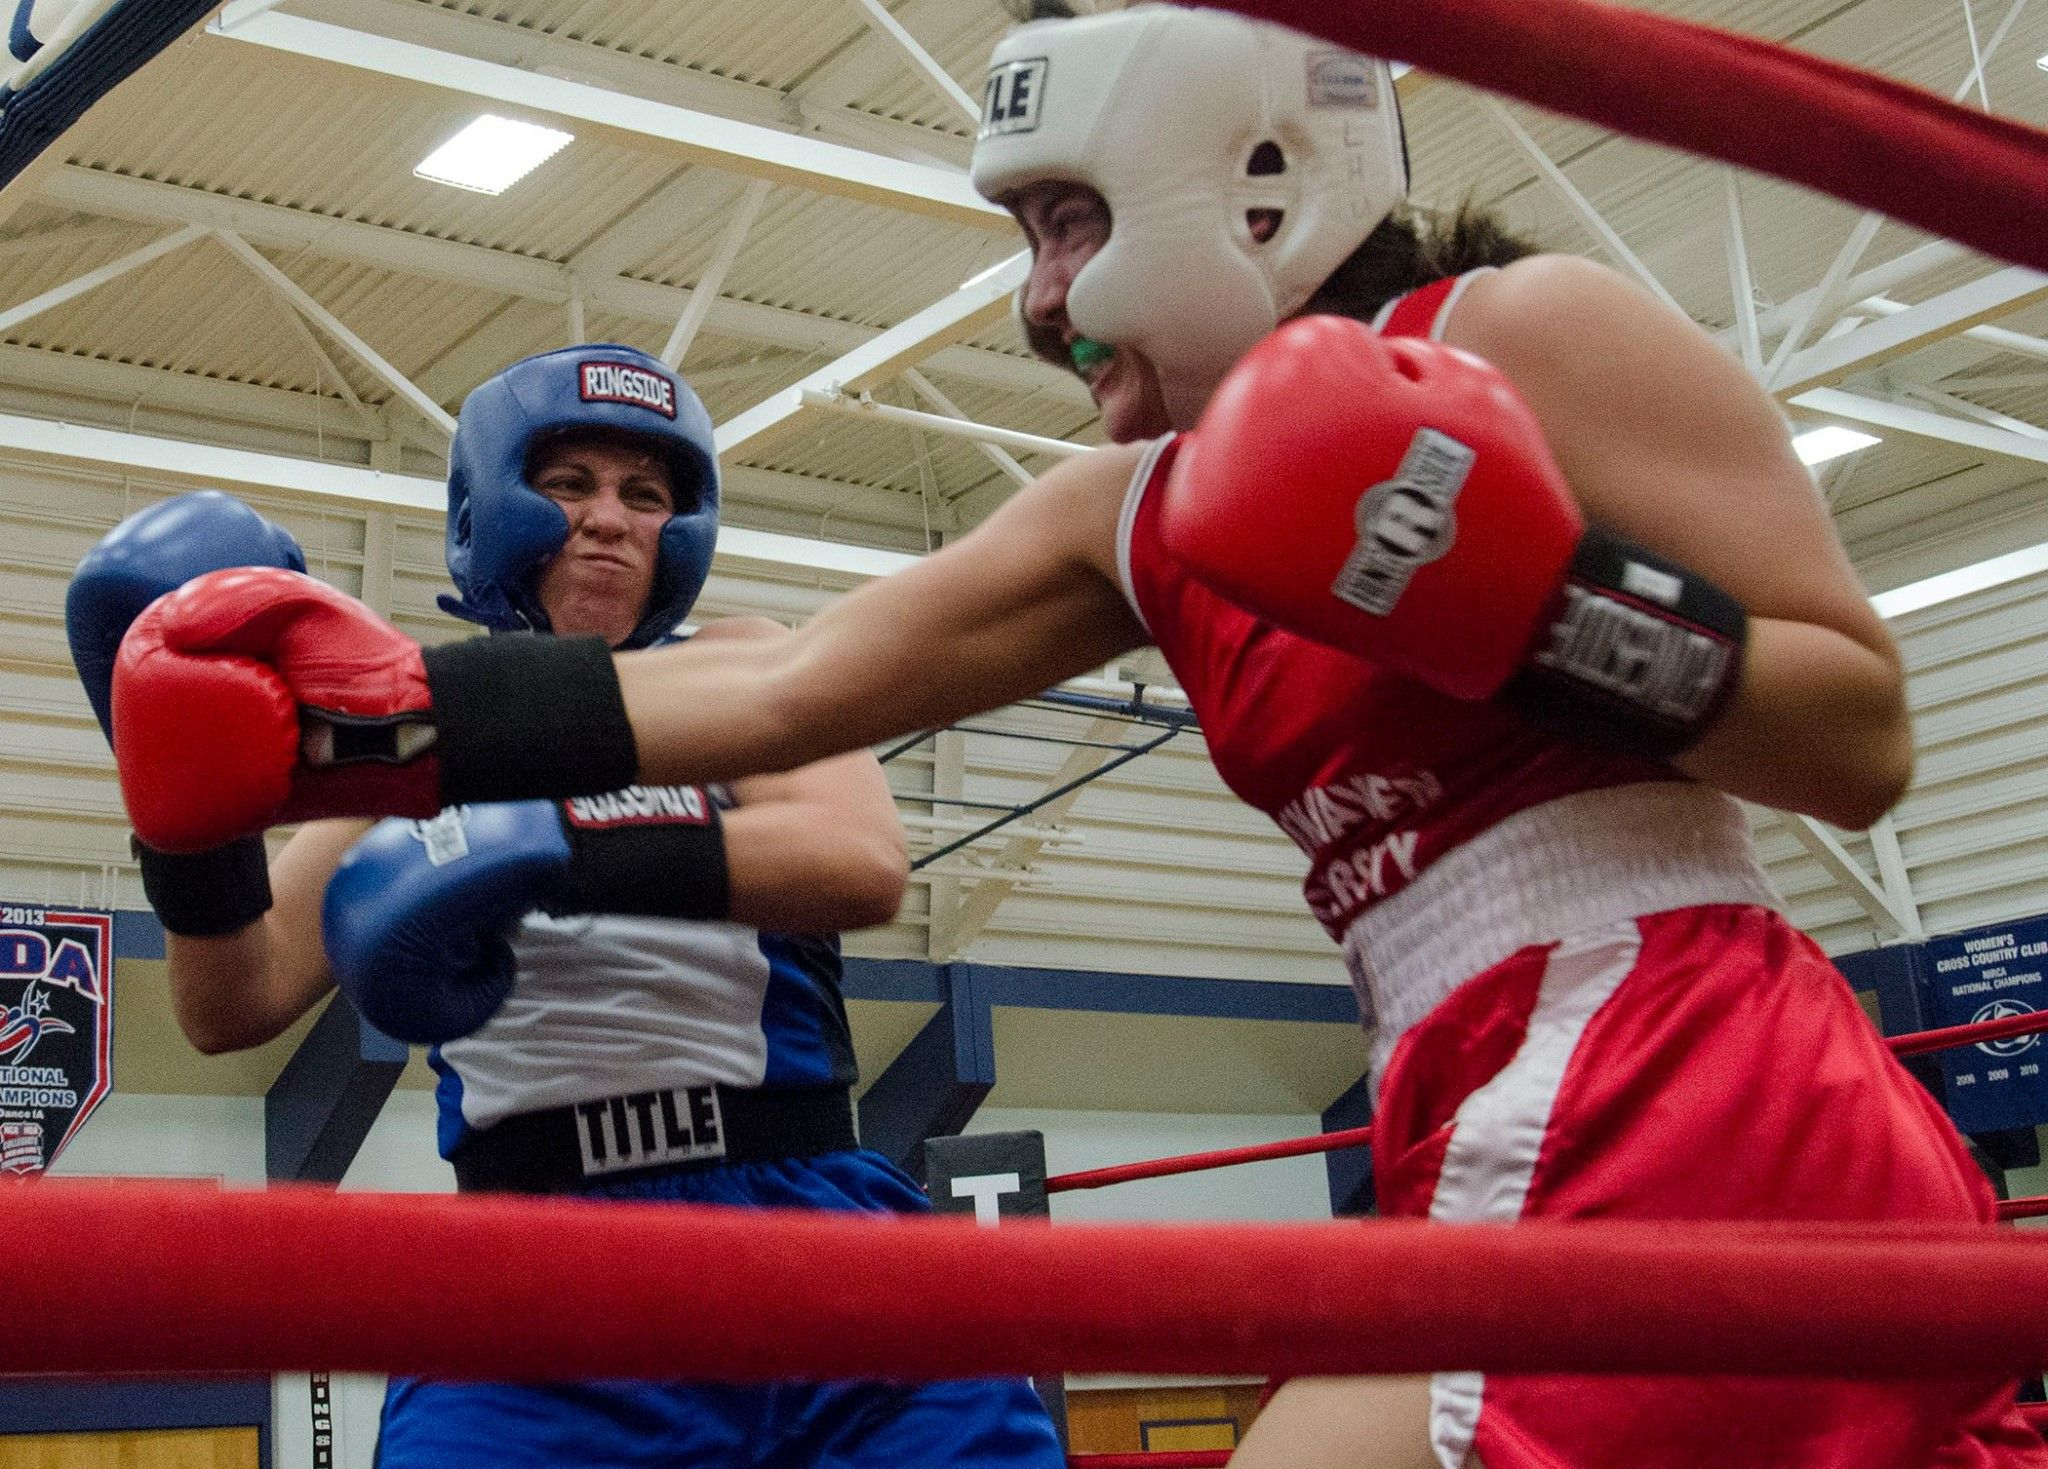 2/7/15 – Penn State's Jodie Villegas, left, moved her record to 3-0 after a win Saturday against Lock Haven's Mikayla Myers in a 139-pound bout in the White Building. Penn State Boxing hosted teams from several universities  for Fight Night at the White Building, a full card of afternoon and evening matches.